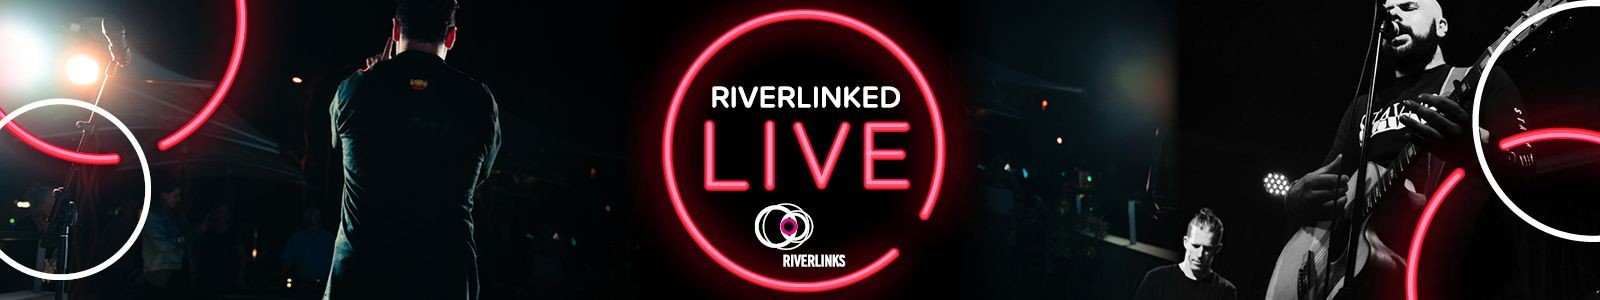 Riverlinked Live